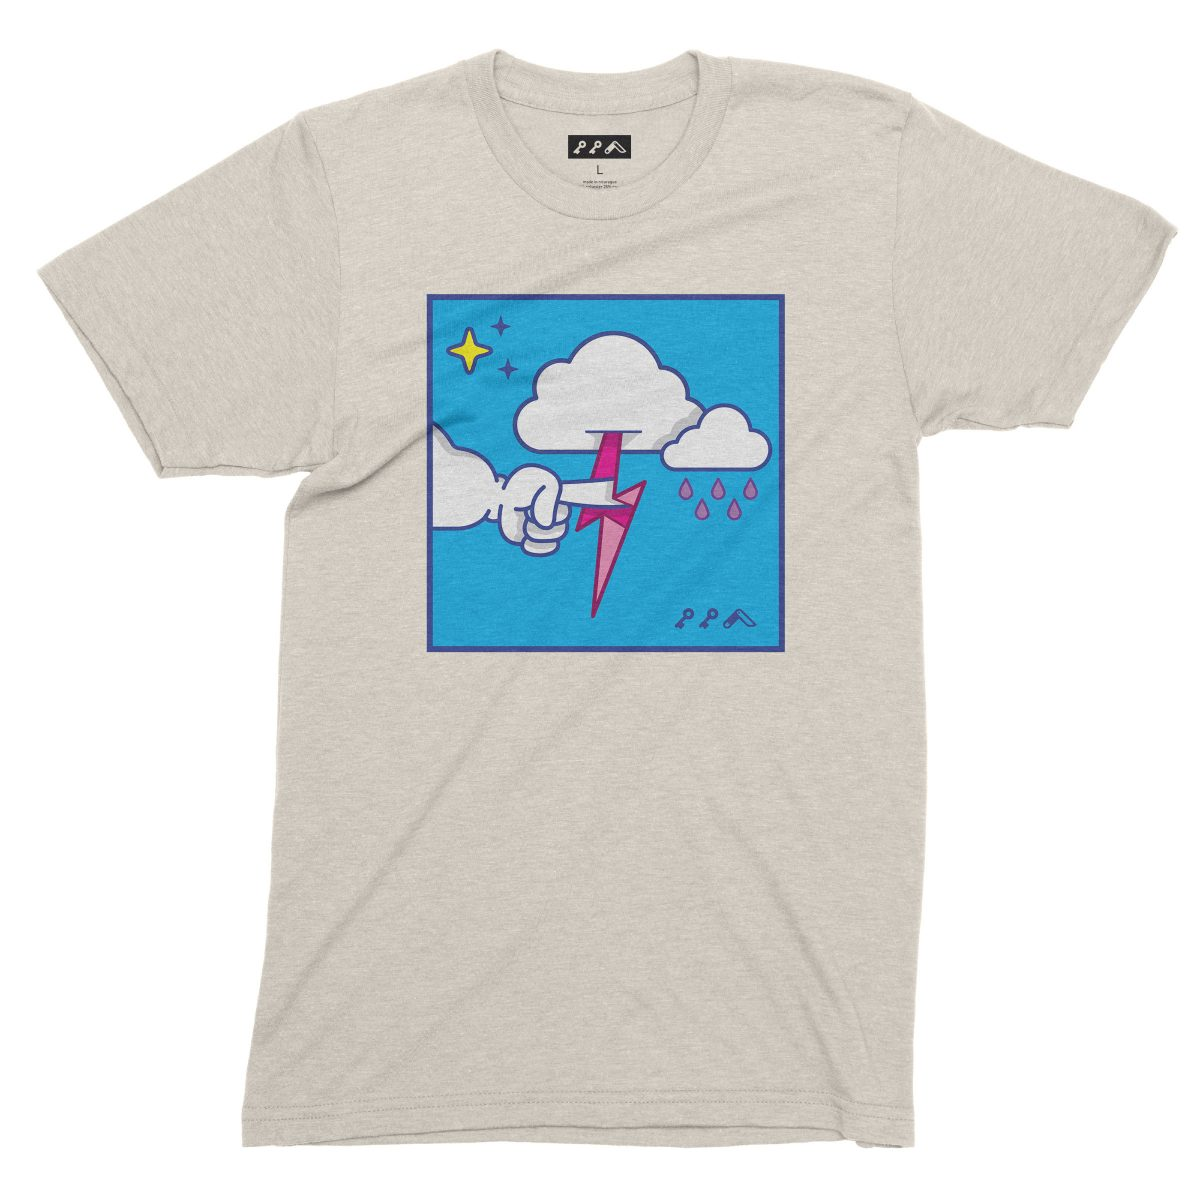 """""""MUTUAL CLOUDSENT"""" funny adult cartoon animation style tee in oatmeal by kikicutt"""